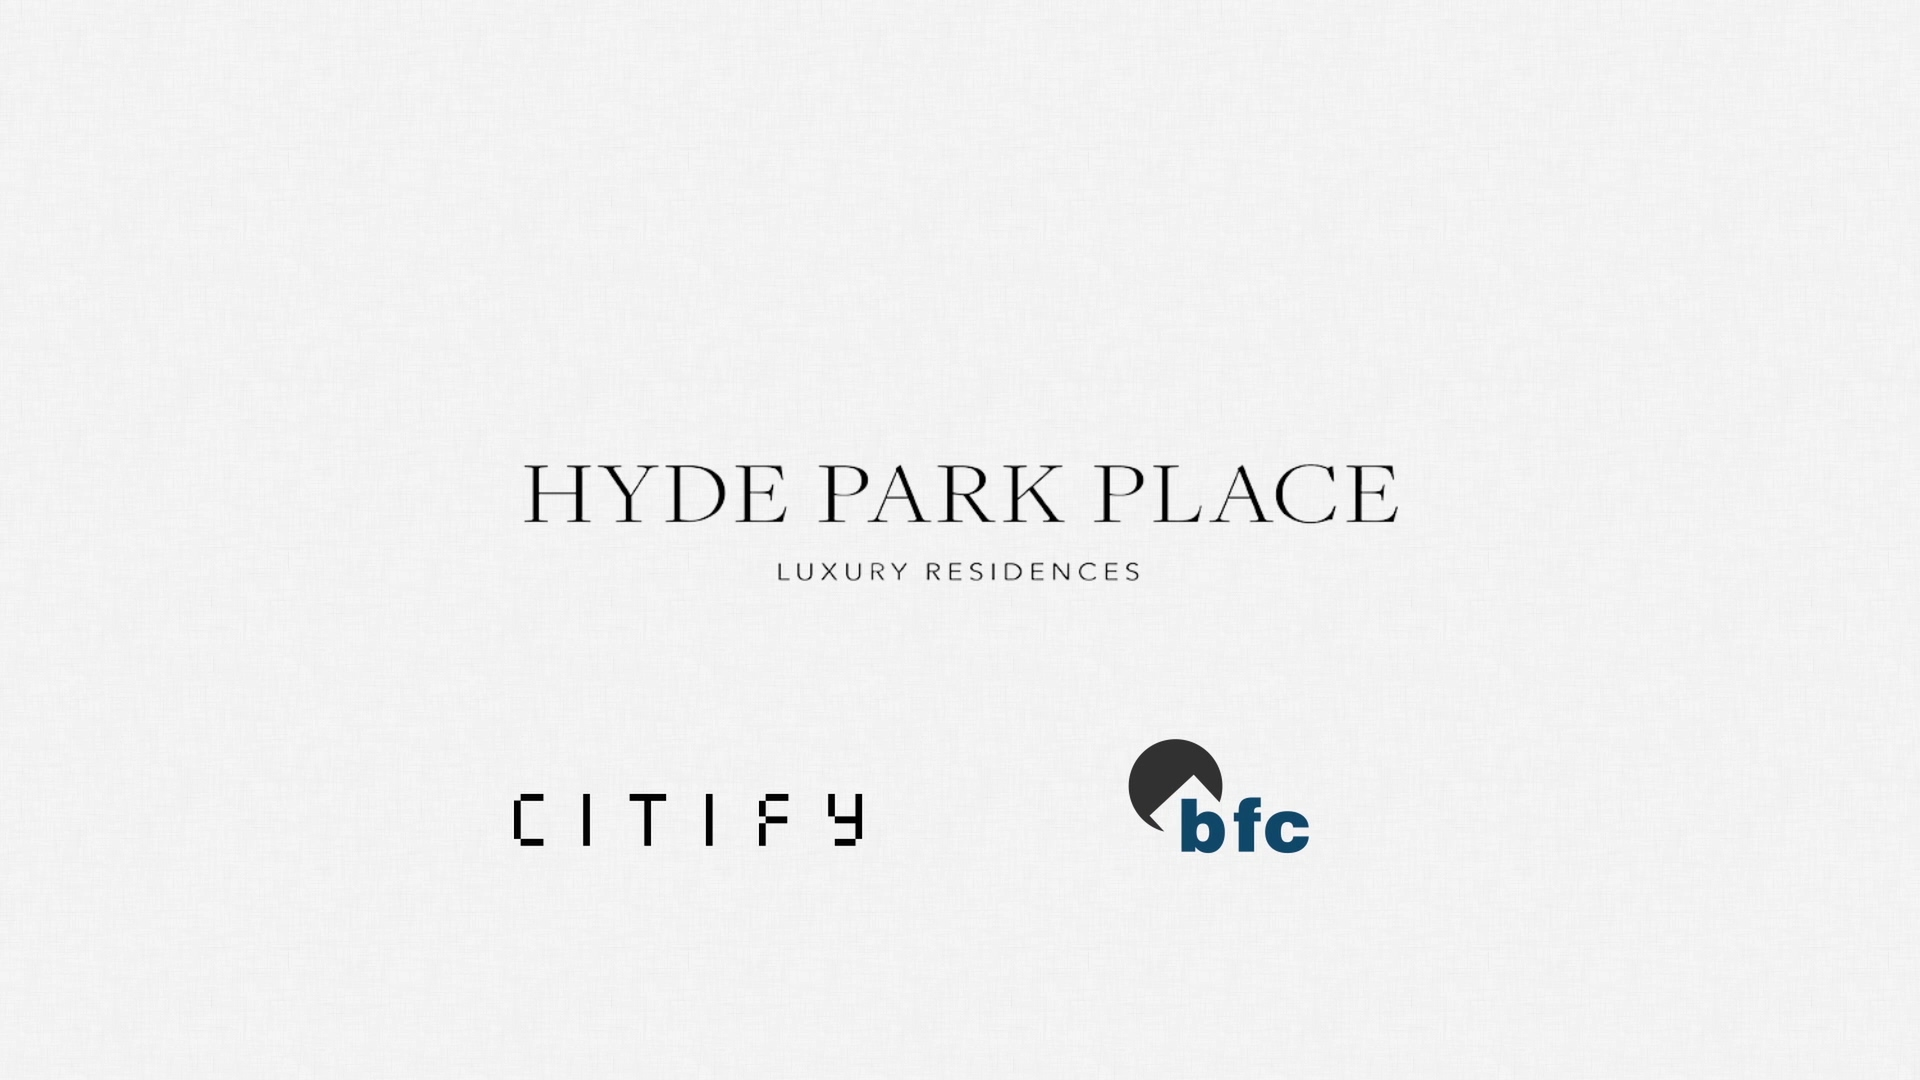 Citify - Hyde Park - August 2020